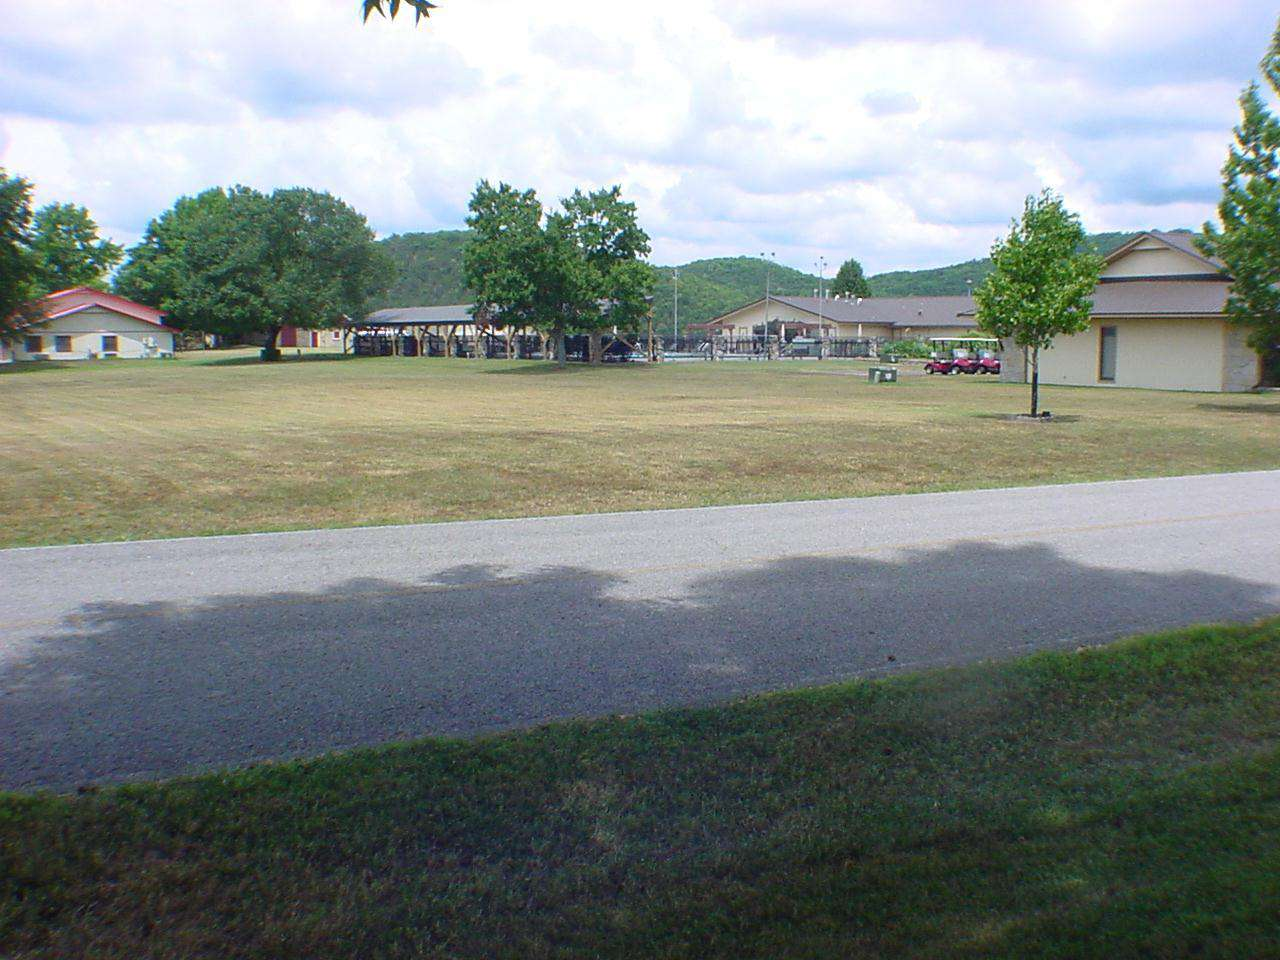 View of the rec center across the street